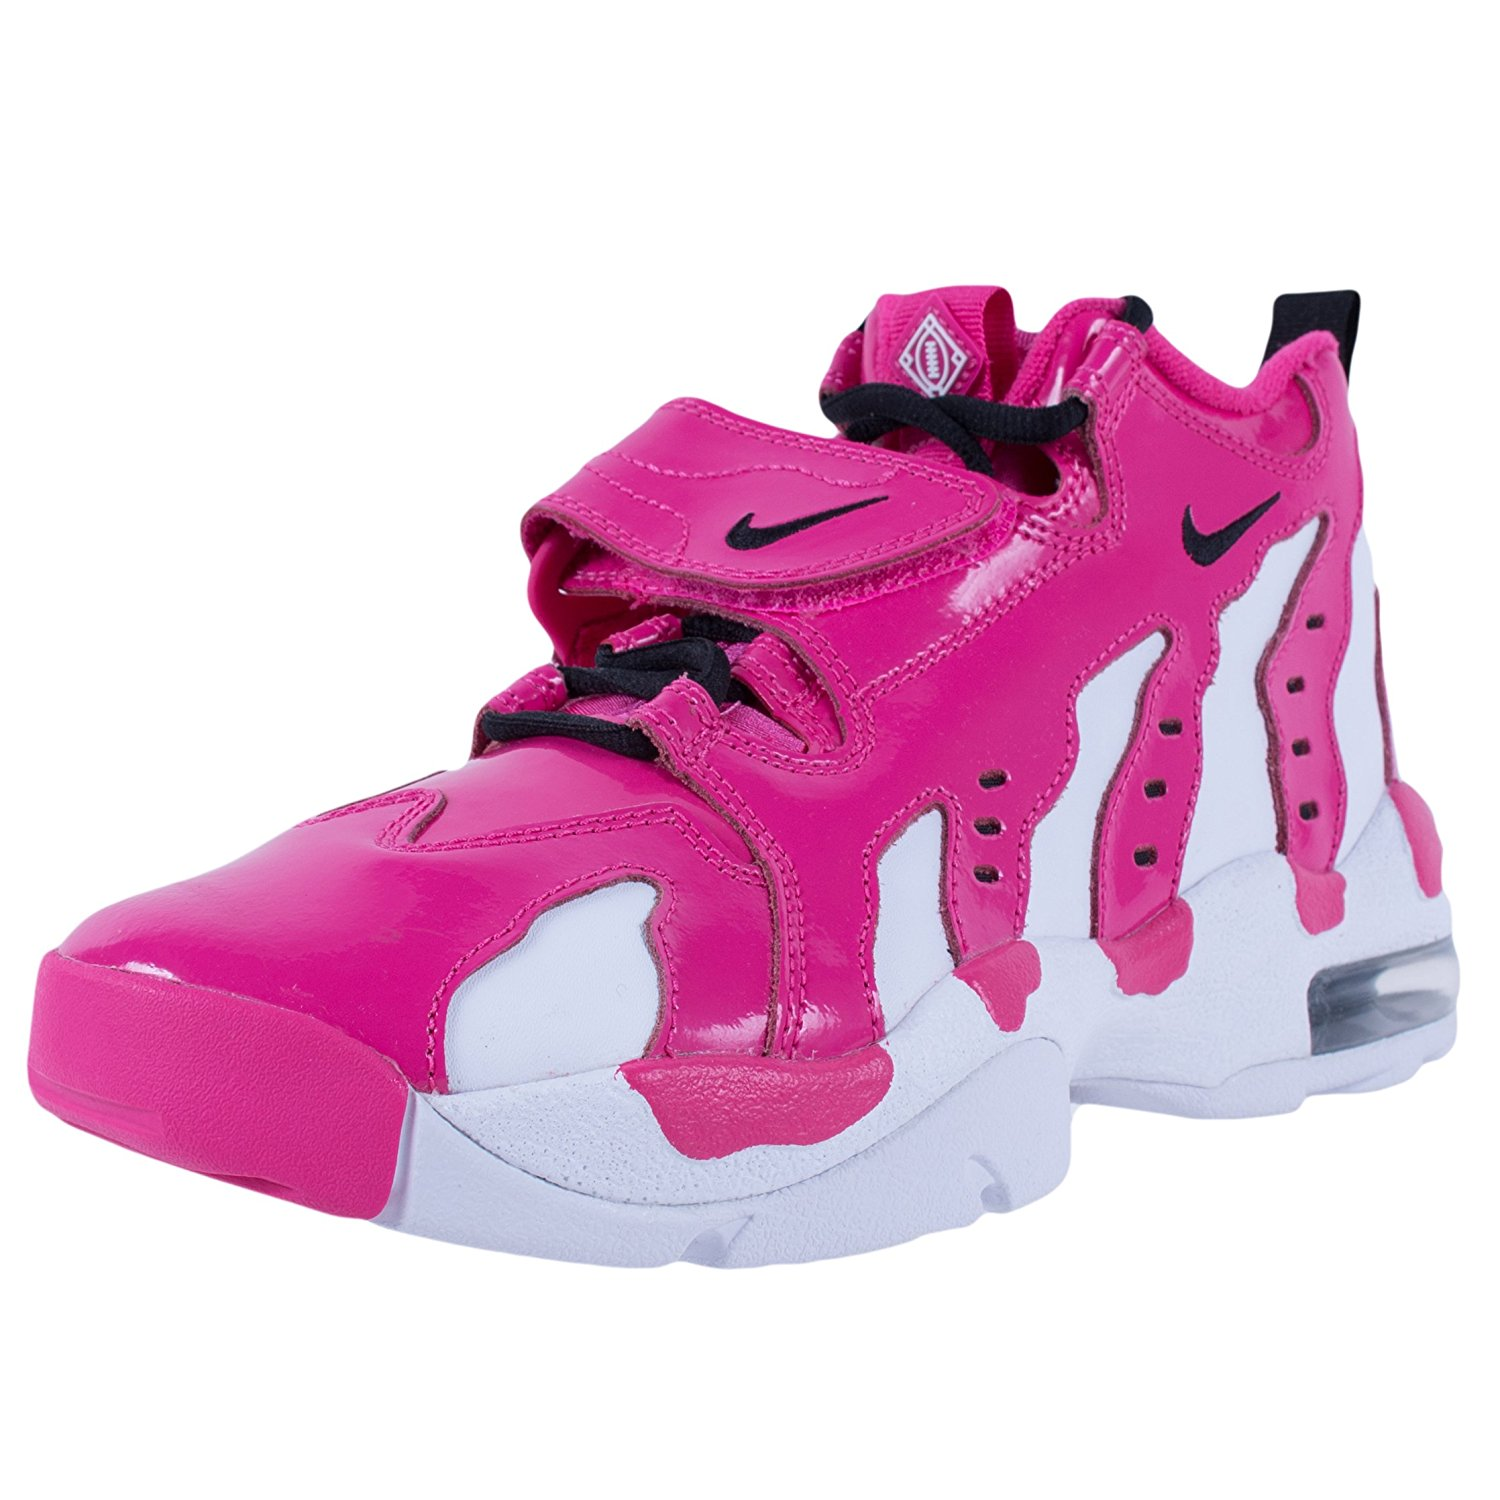 fed7a45bef1c Get Quotations · NIKE YOUTH AIR DT MAX '96 GS CROSS TRAINERS VIVID PINK BLACK  WHITE 616502 601